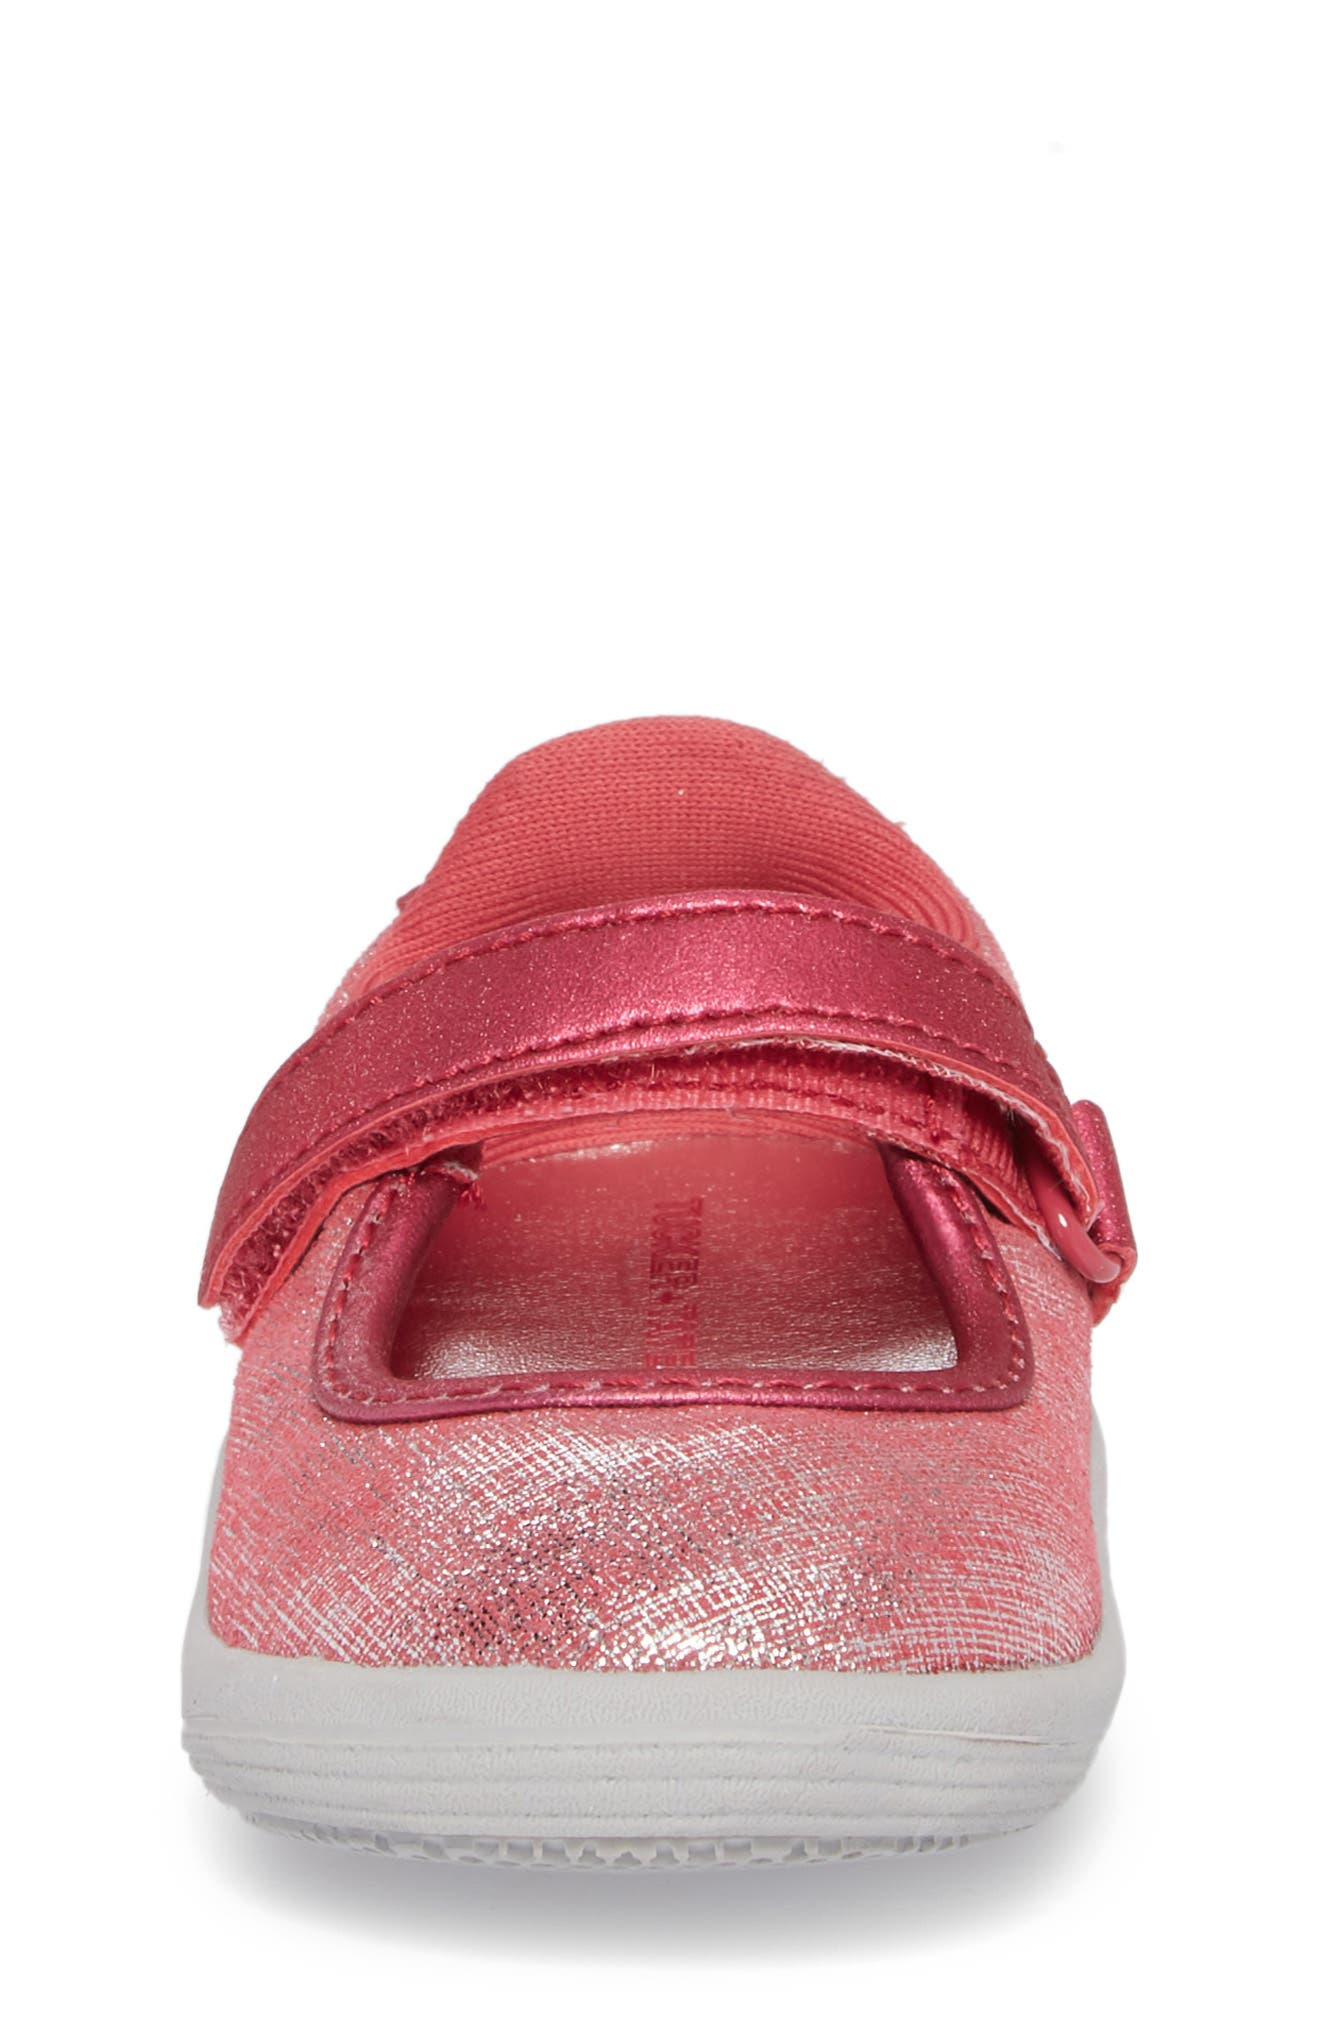 Nora Metallic Mary Jane Sneaker,                             Alternate thumbnail 4, color,                             Pink Shimmer Leather